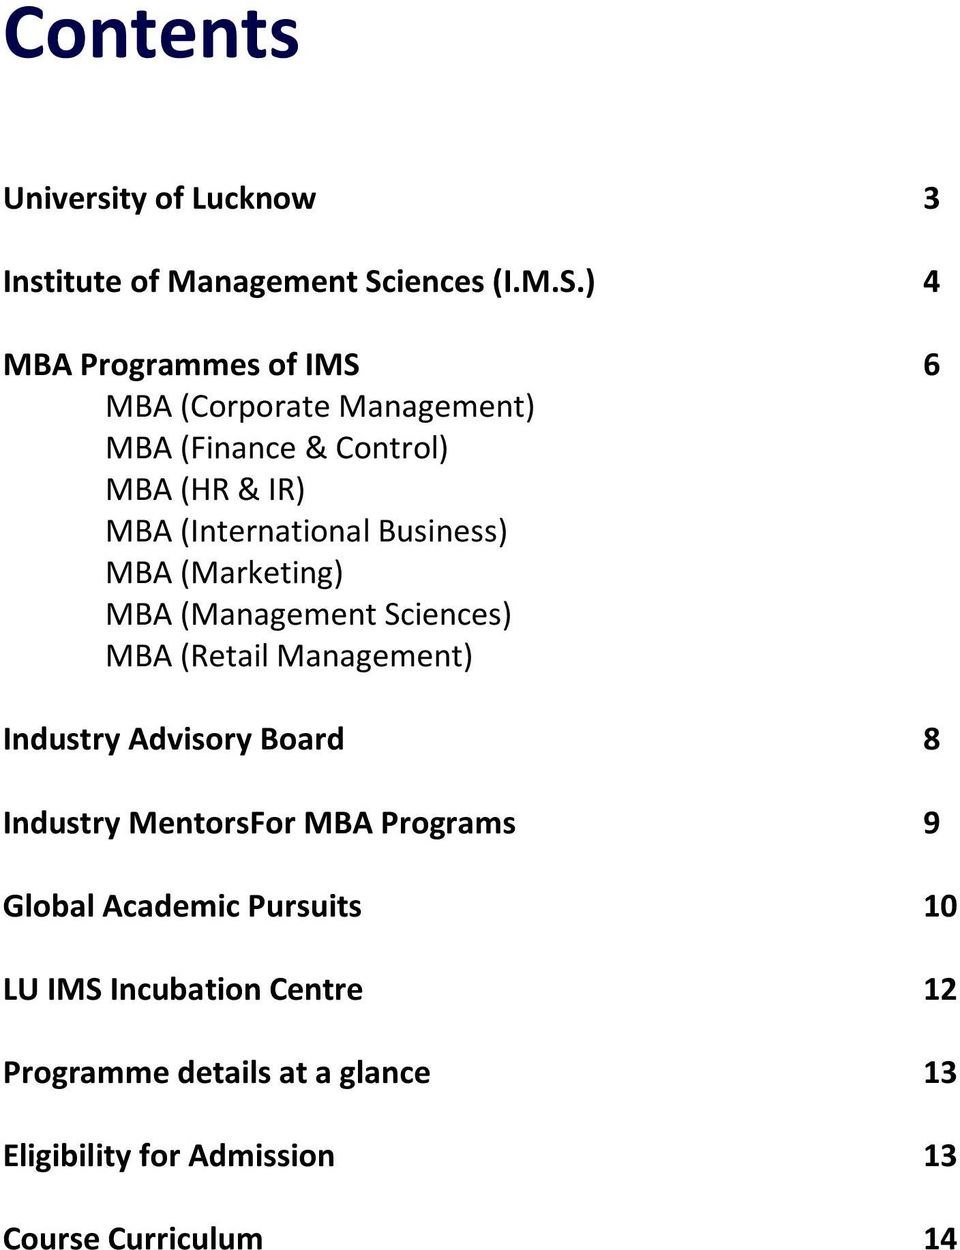 ) 4 MBA Programmes of IMS 6 MBA (Corporate Management) MBA (Finance & Control) MBA (HR & IR) MBA (International